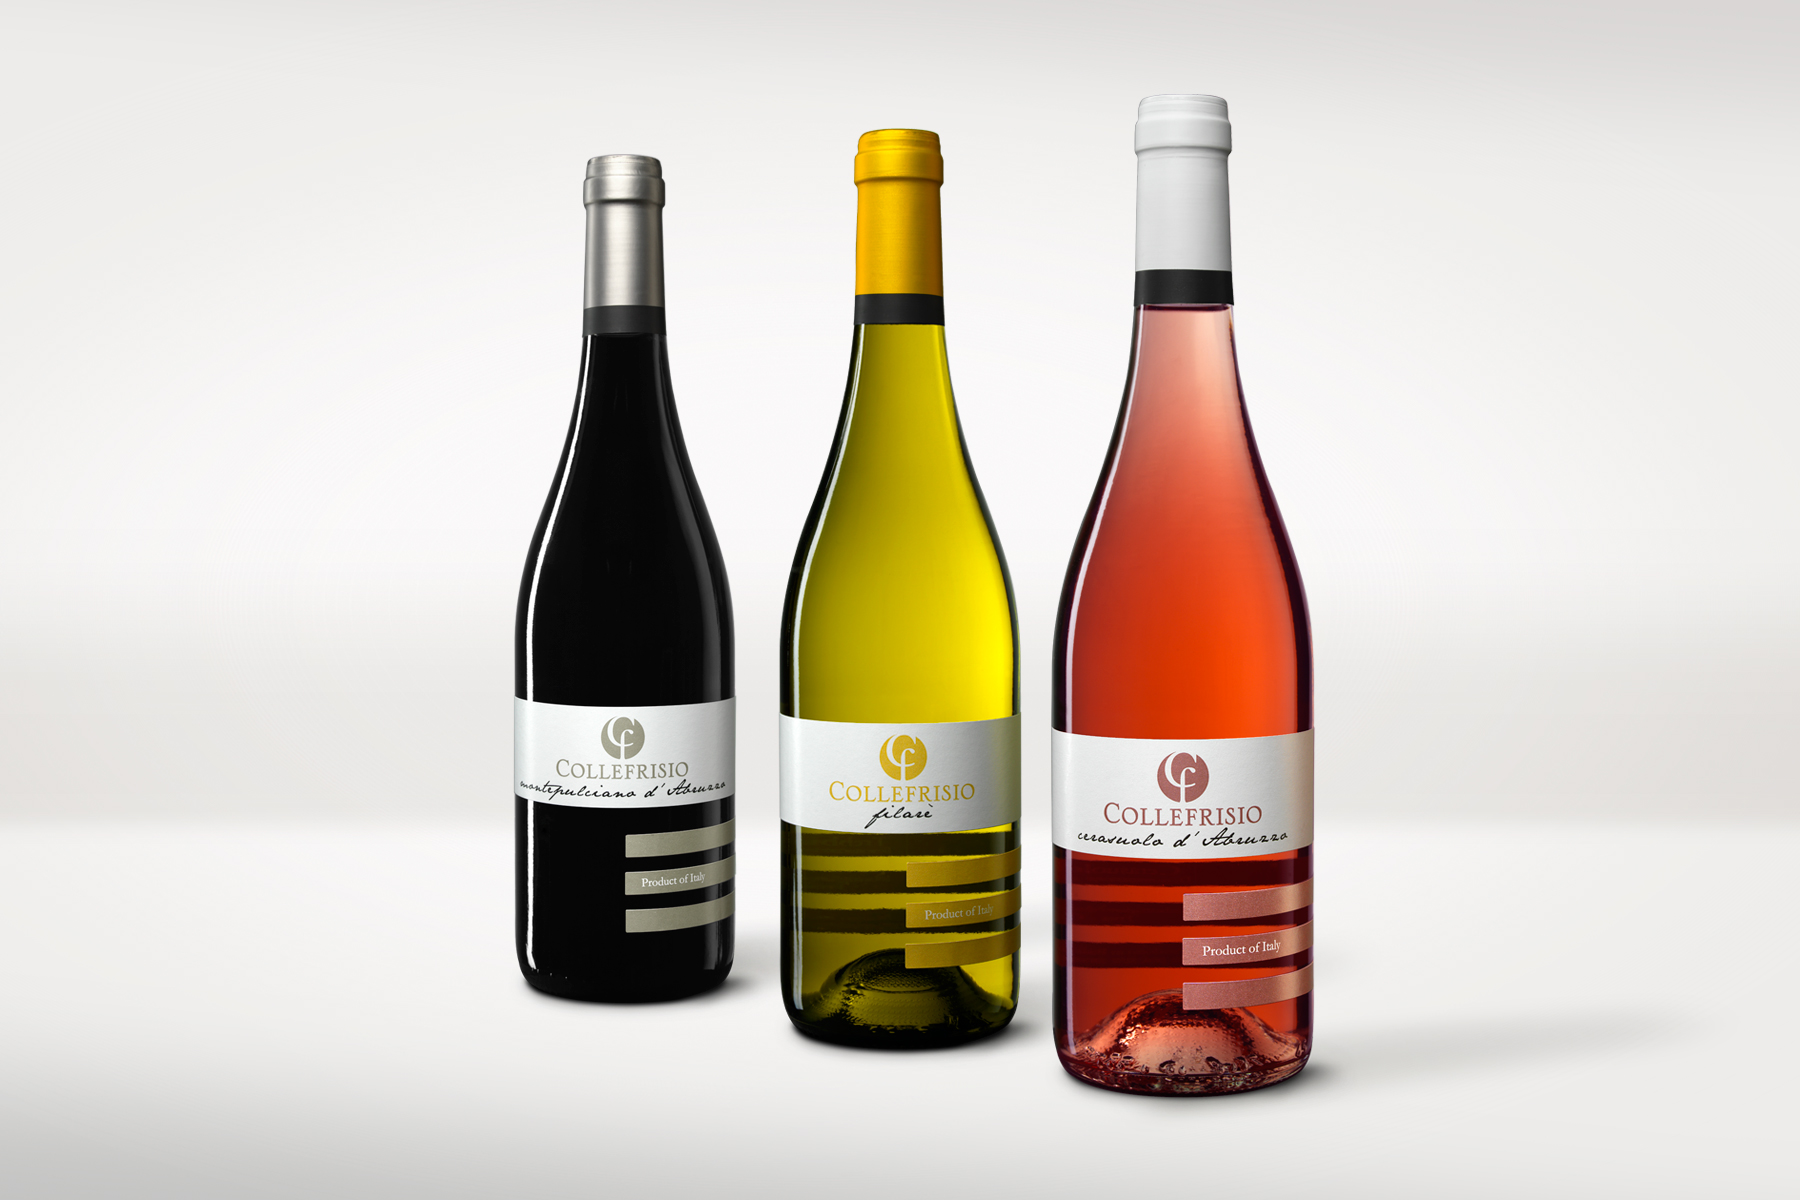 spaziodipaolo_collefrisio_vini_packaging_11